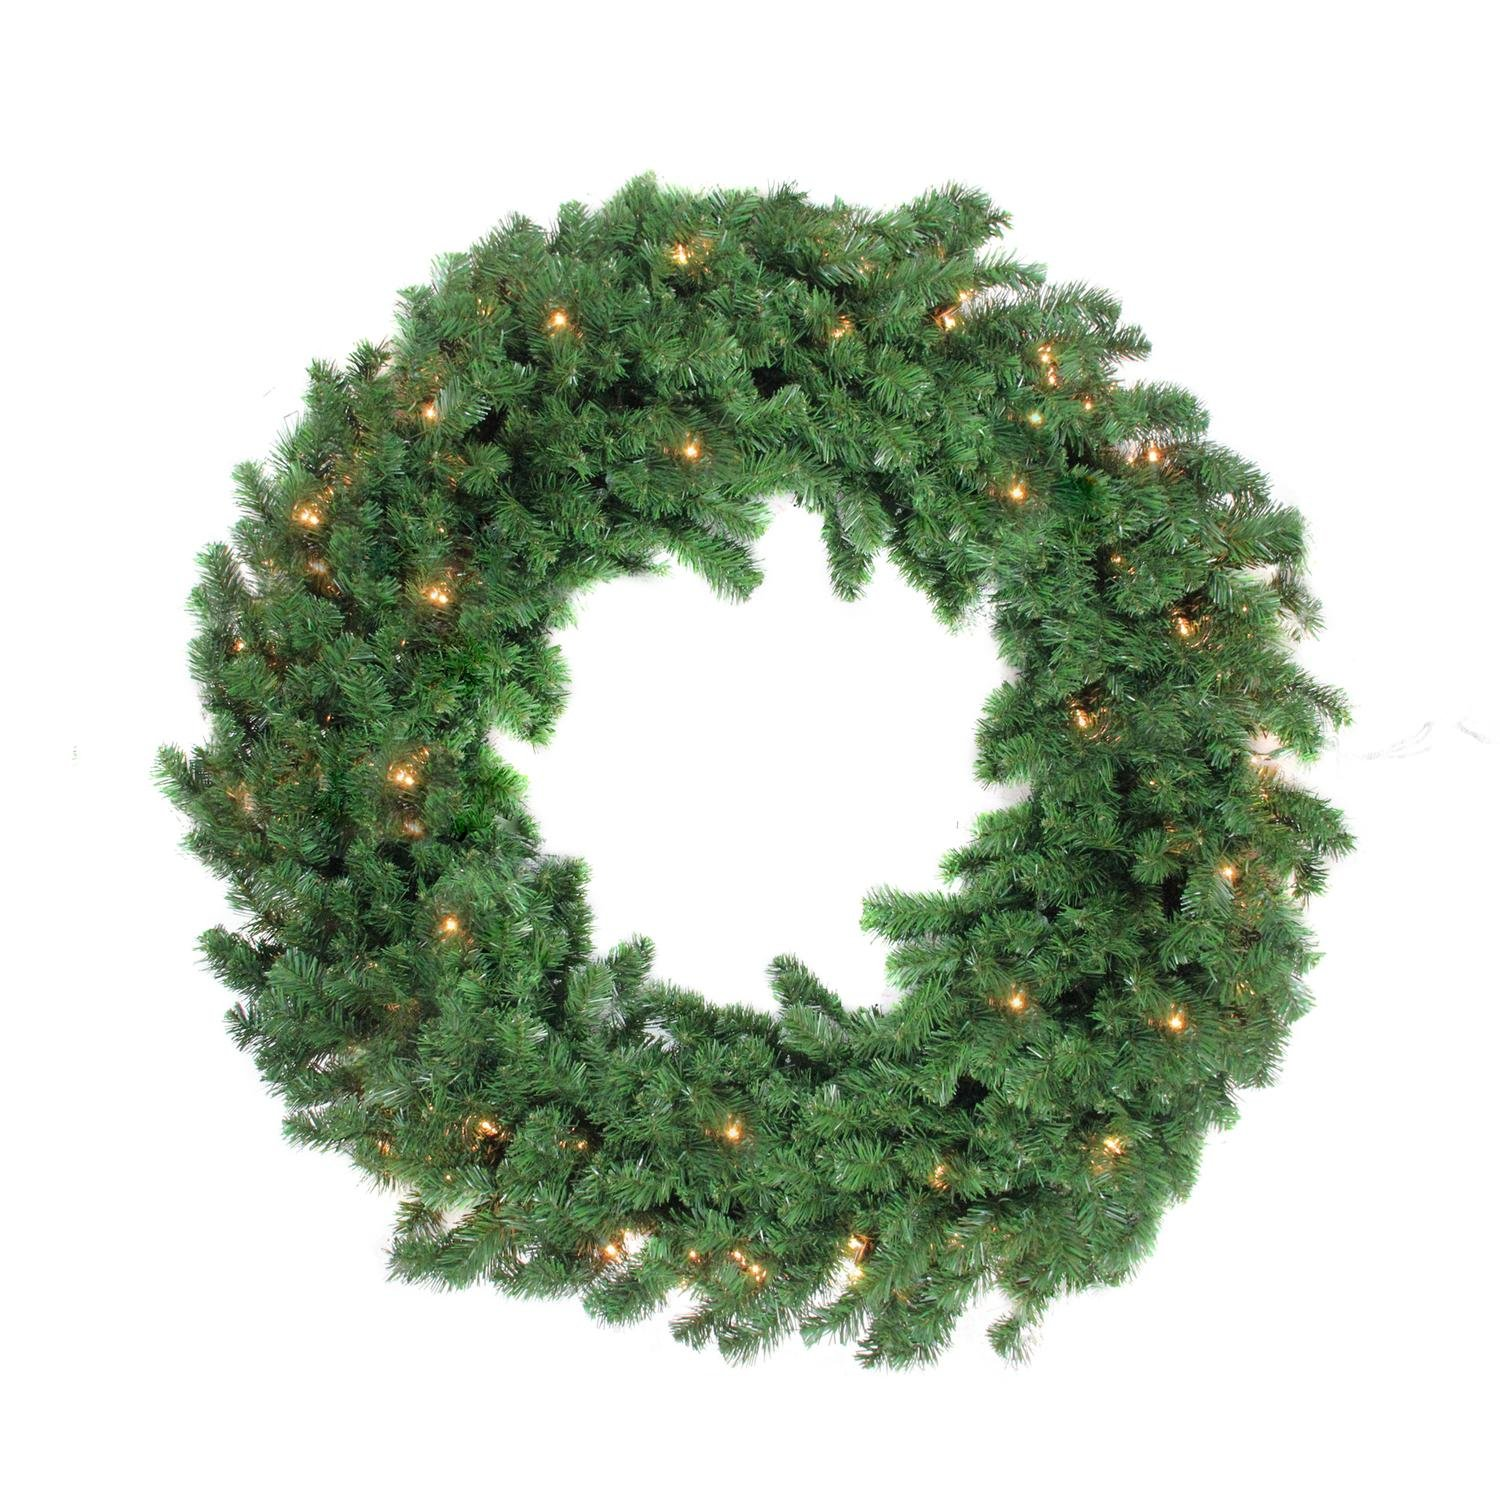 Northlight Deluxe Windsor Pine Artificial Christmas Wreath - 48-Inch, Clear Lights